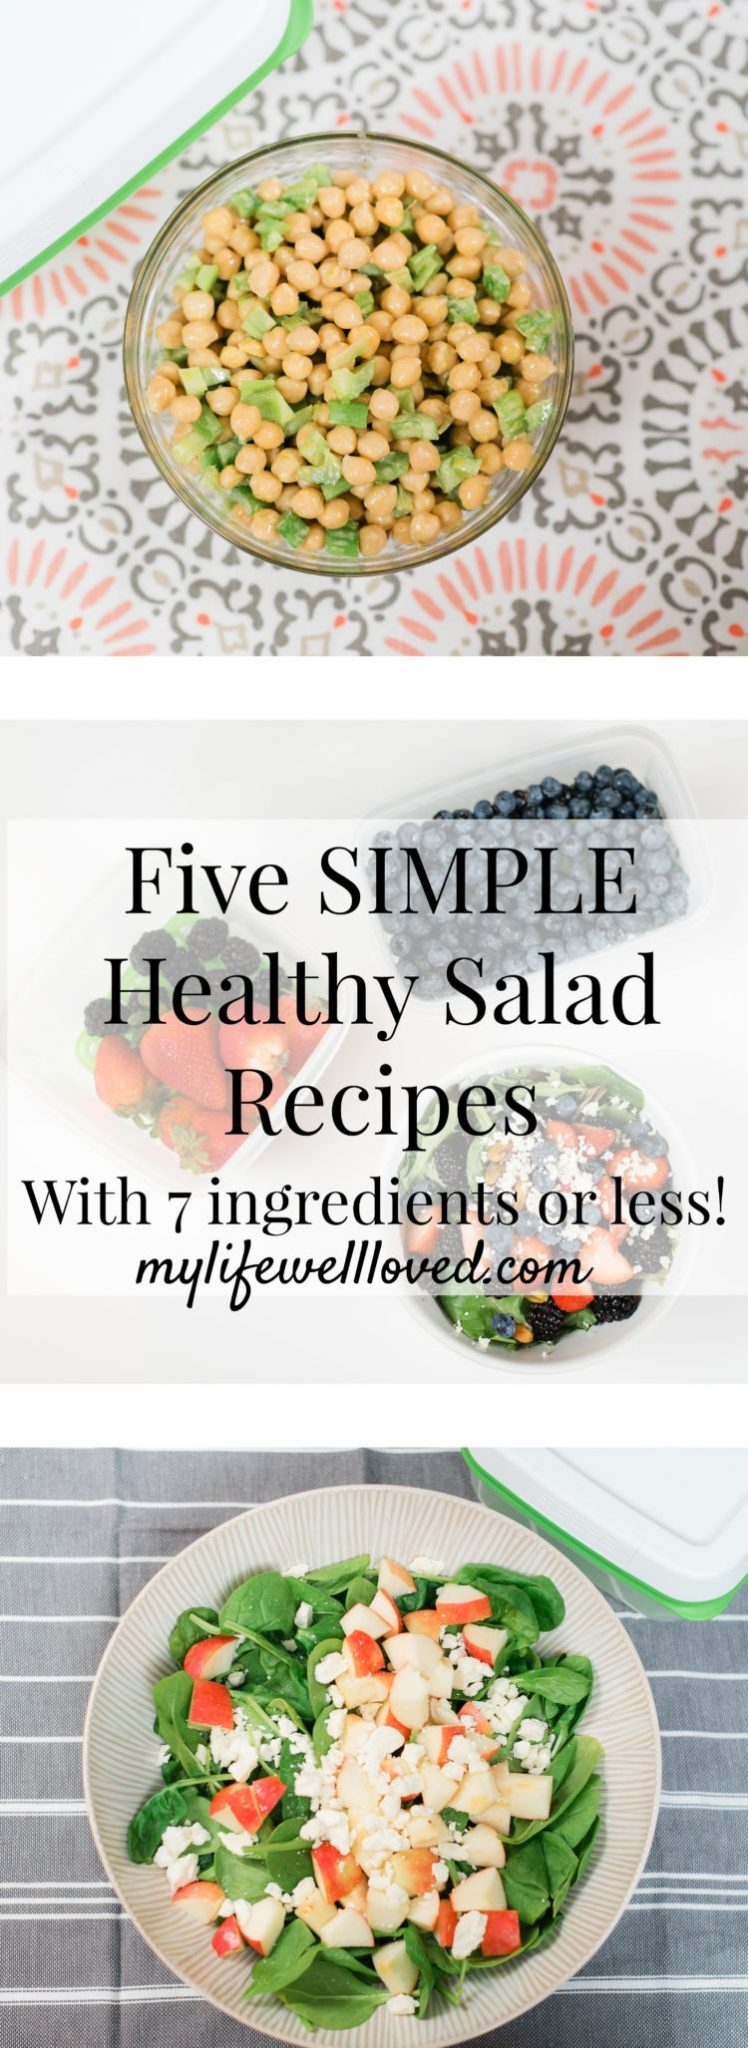 5 Super Fresh & Delicious Summer Salad Recipes by Popular Alabama Life and Style Blogger, Heather Brown // #salads #summer #recipes